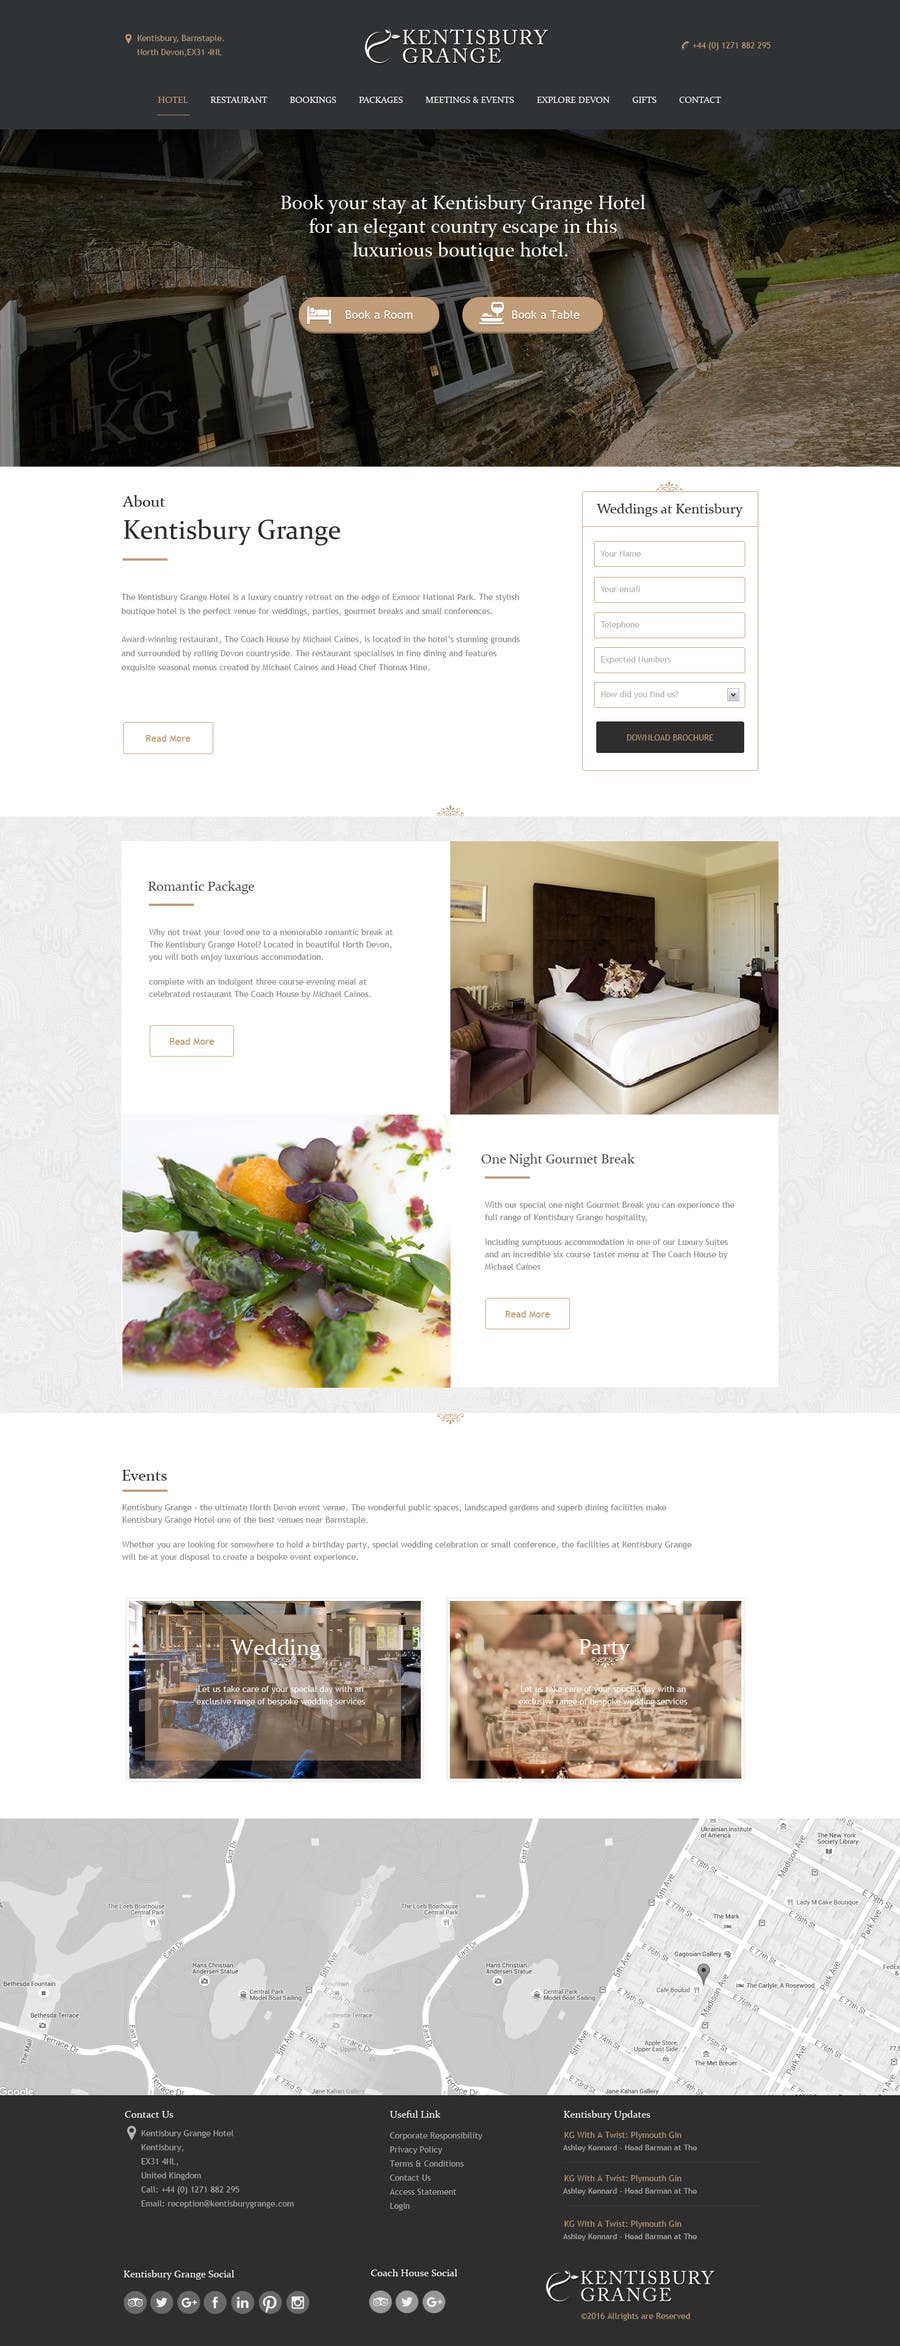 Design a website mockup for a luxury brand boutique hotel for Best boutique hotel brands